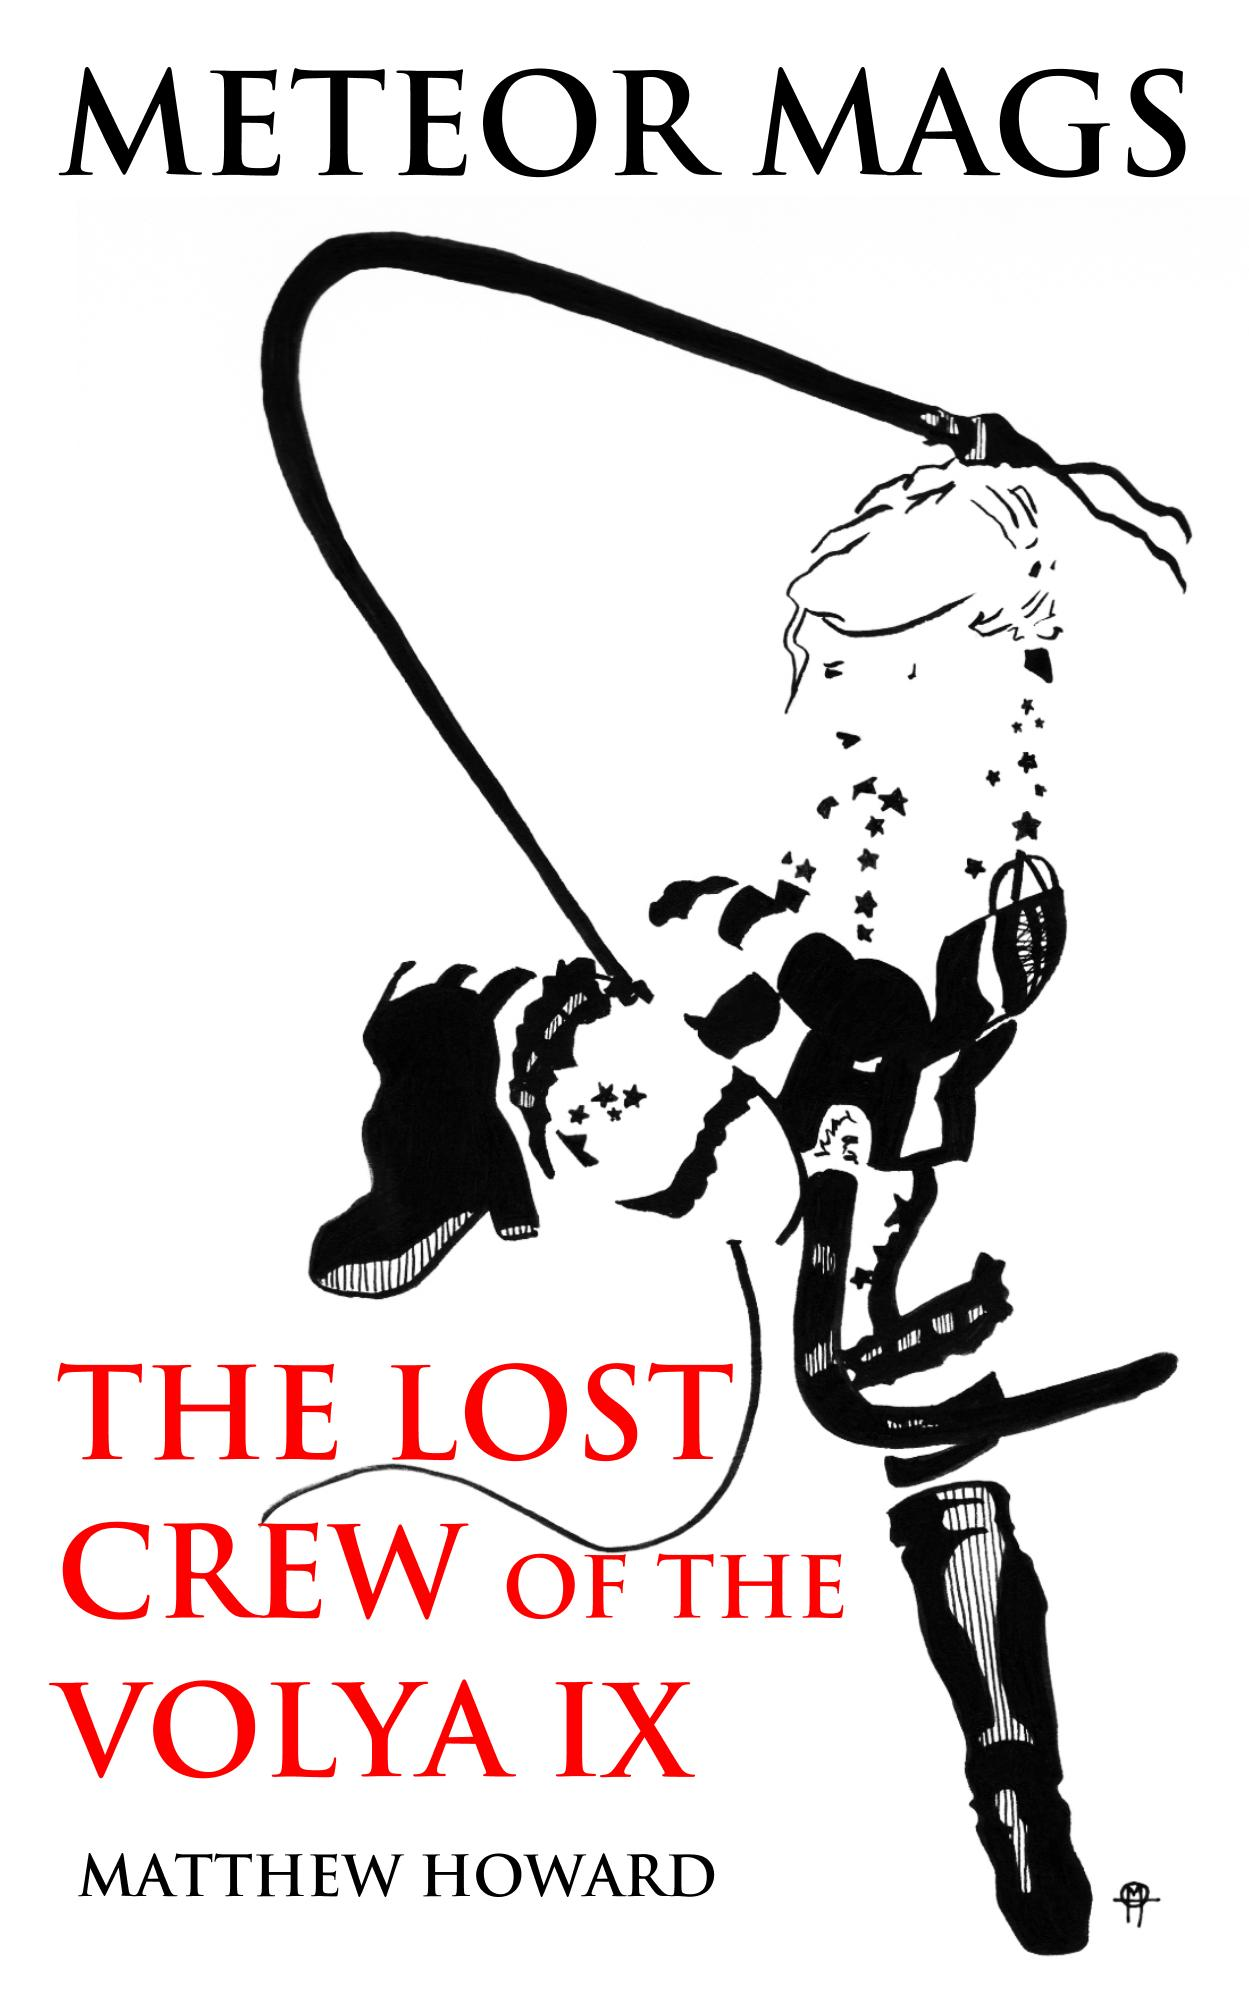 lost crew of the volya ix